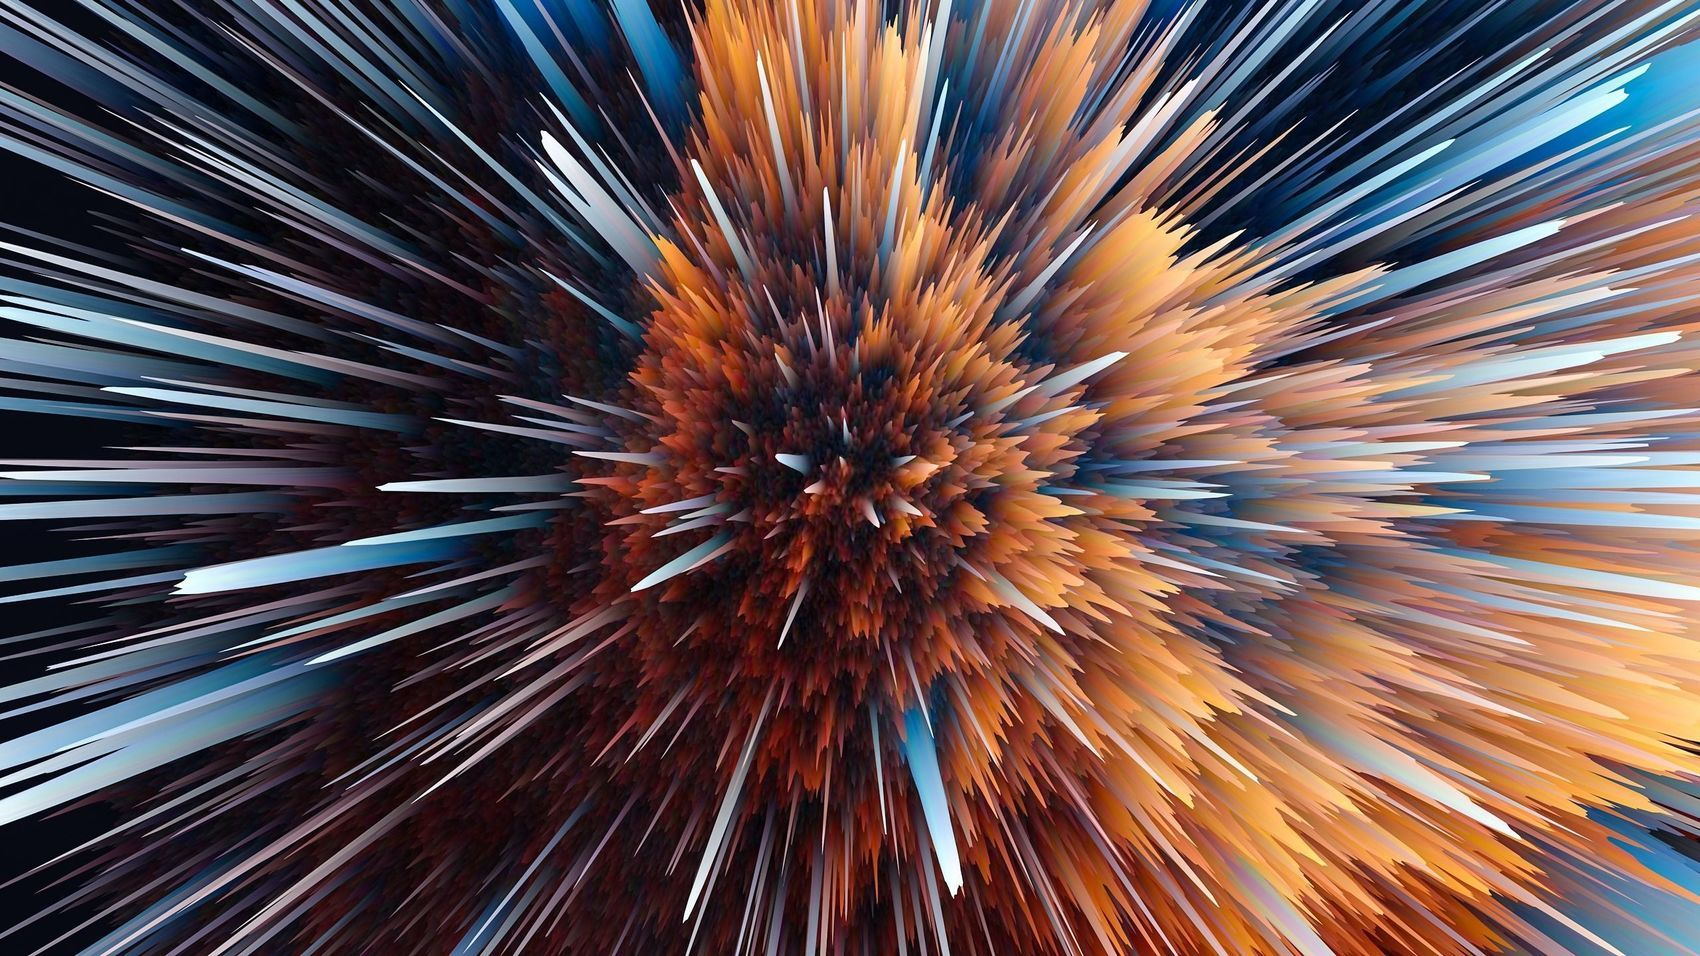 Particle Explosion By Ahmed Nabil The Featured Artwork On Adobe Photos Abstract Wallpaper Computer Wallpaper Desktop Wallpapers Abstract Wallpaper Backgrounds